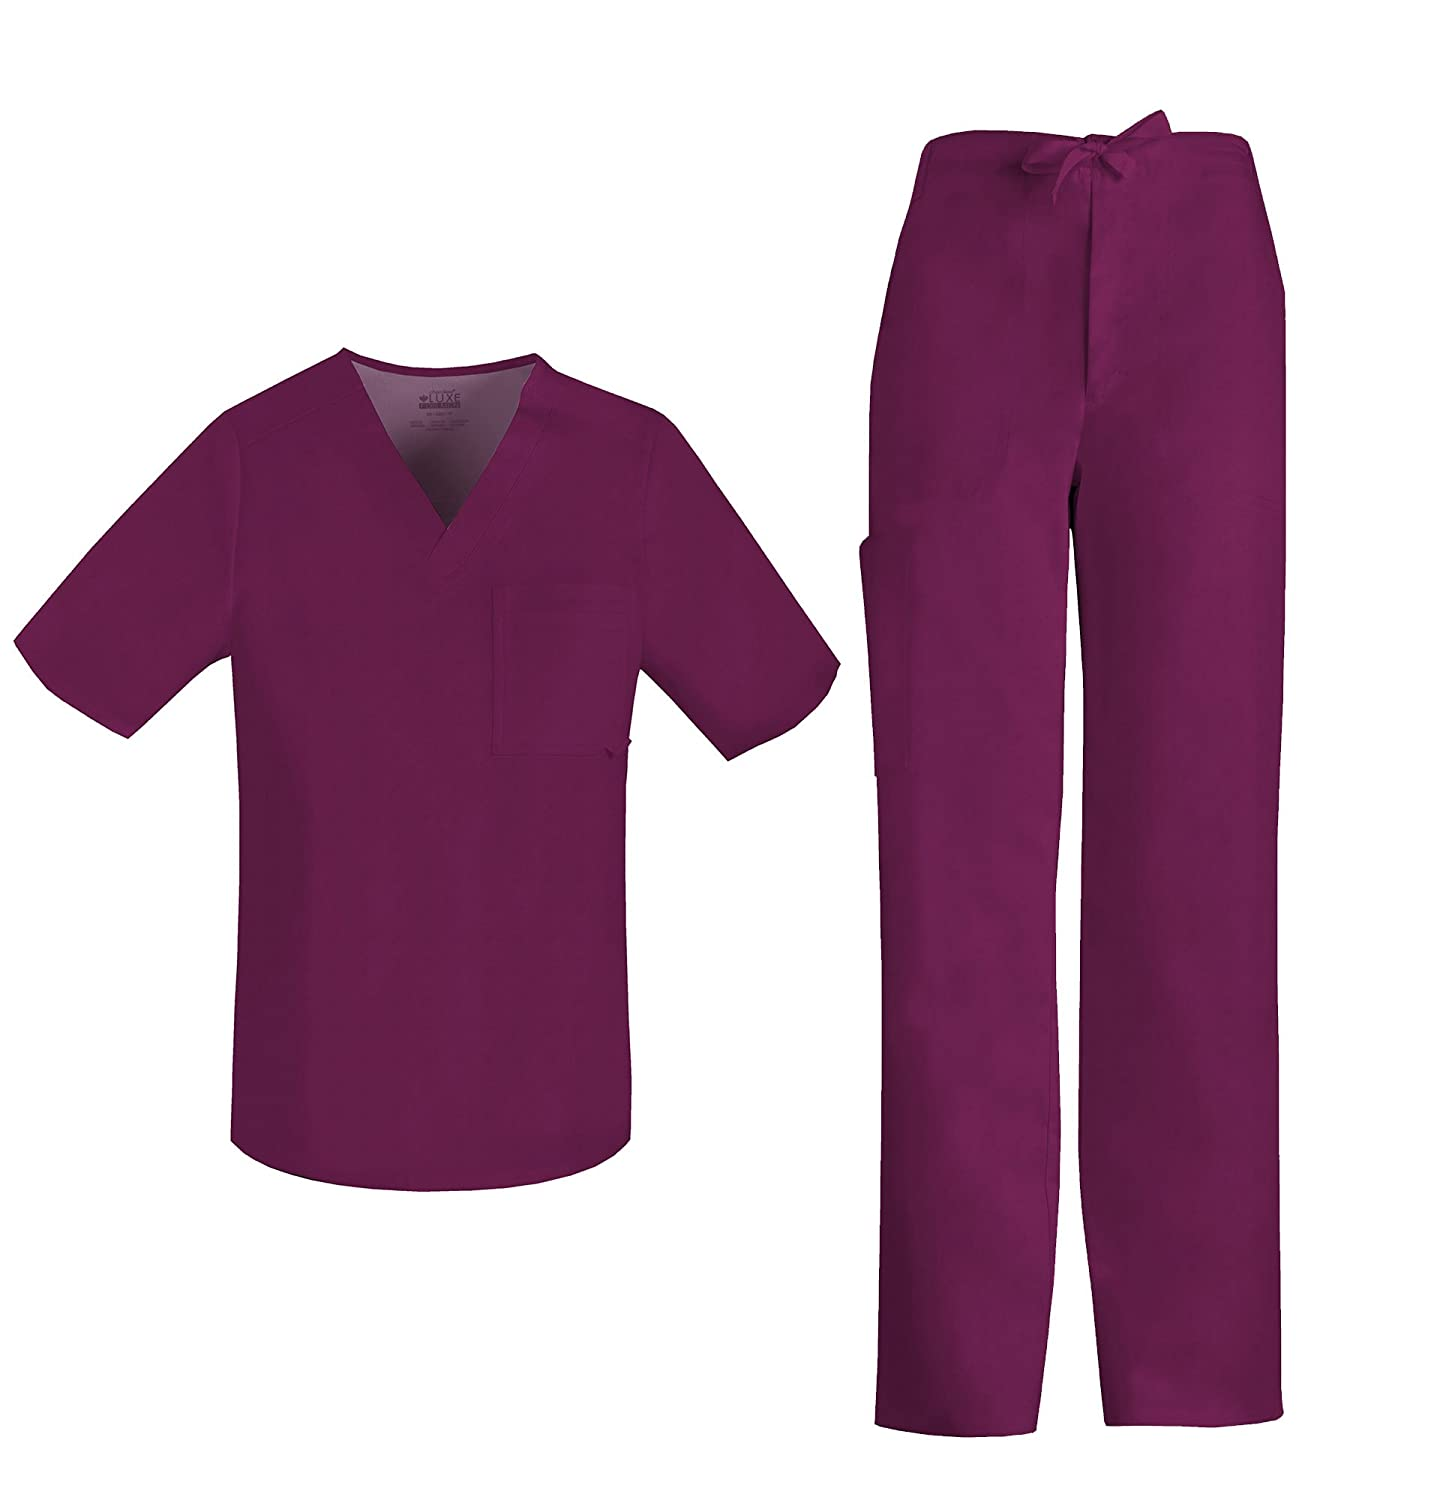 c7ddc264917 Scrub Set includes the Cherokee Luxe Men\'s V-Neck Top 1929 & Cherokee Luxe  Men\'s Drawstring Cargo Pant 1022. Men\'s classic fit V-Neck scrub top  features ...